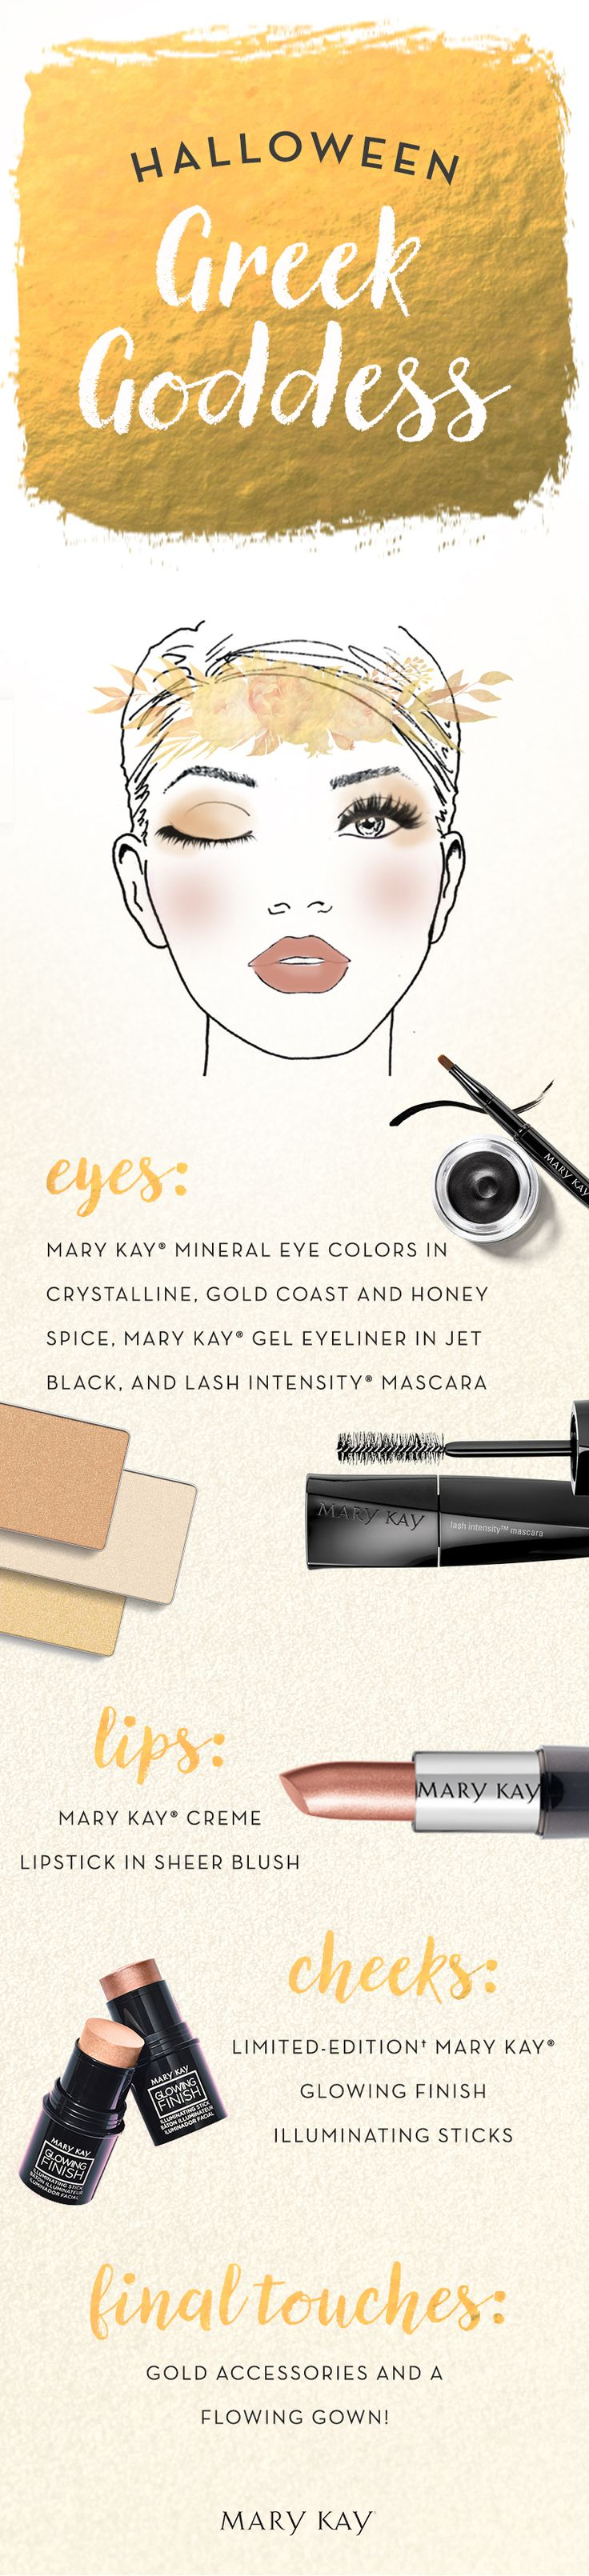 Fill the room with a gorgeous gold glow as a Greek goddess for Halloween! Make eyes stand out with Mary Kay® Gel Eyeliner and Lash Intensity® Mascara, paired with golden Mary Kay® Mineral Eye Colors in Crystalline, Gold Coast, and Honey Spice. Top off this look with a golden flower crown and flowing gown.